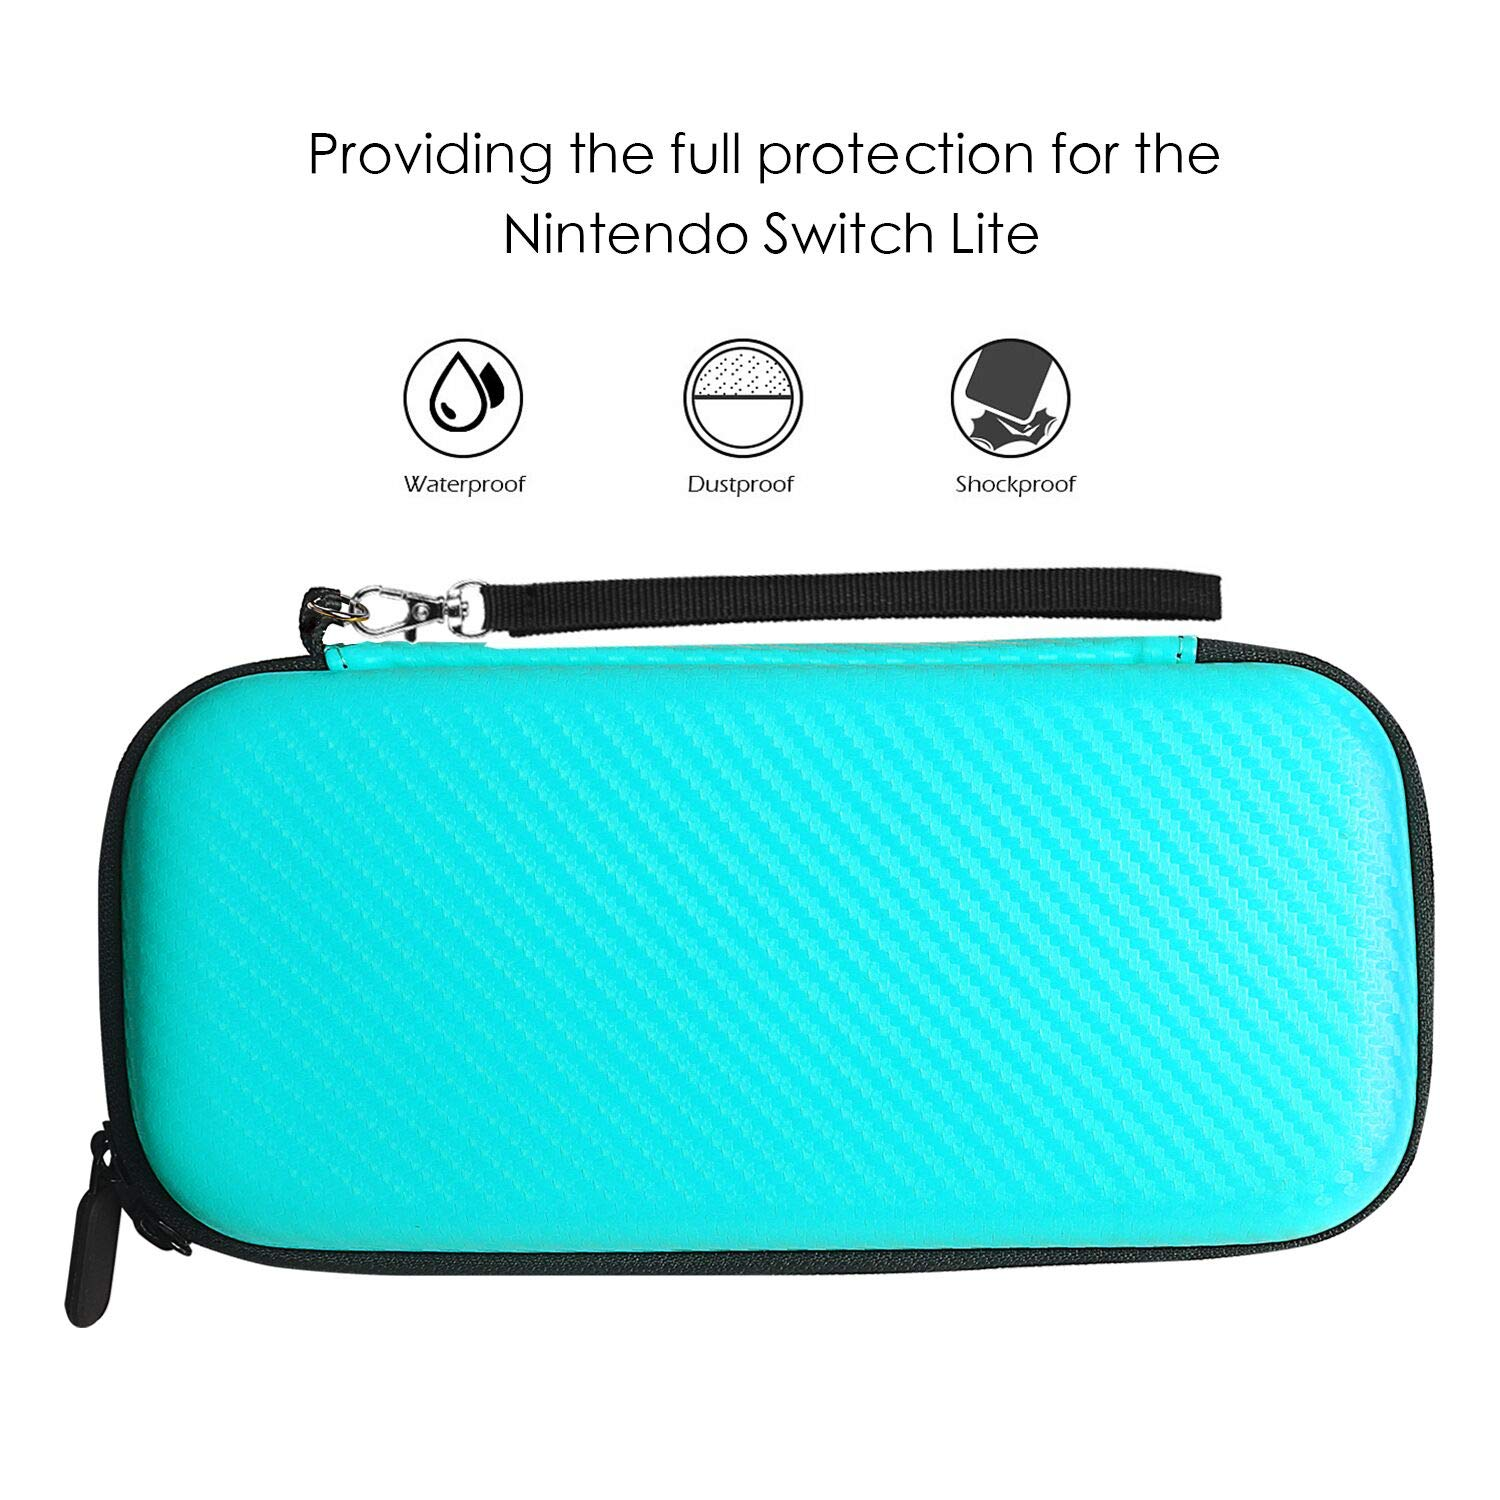 YCCSKY Carrying Case for Nintendo Switch Lite, [Portable Version] Ultra-Thin Travel Carry Case with 10 Card Slot and 1 Screen Protector Included (Turquoise Blue)